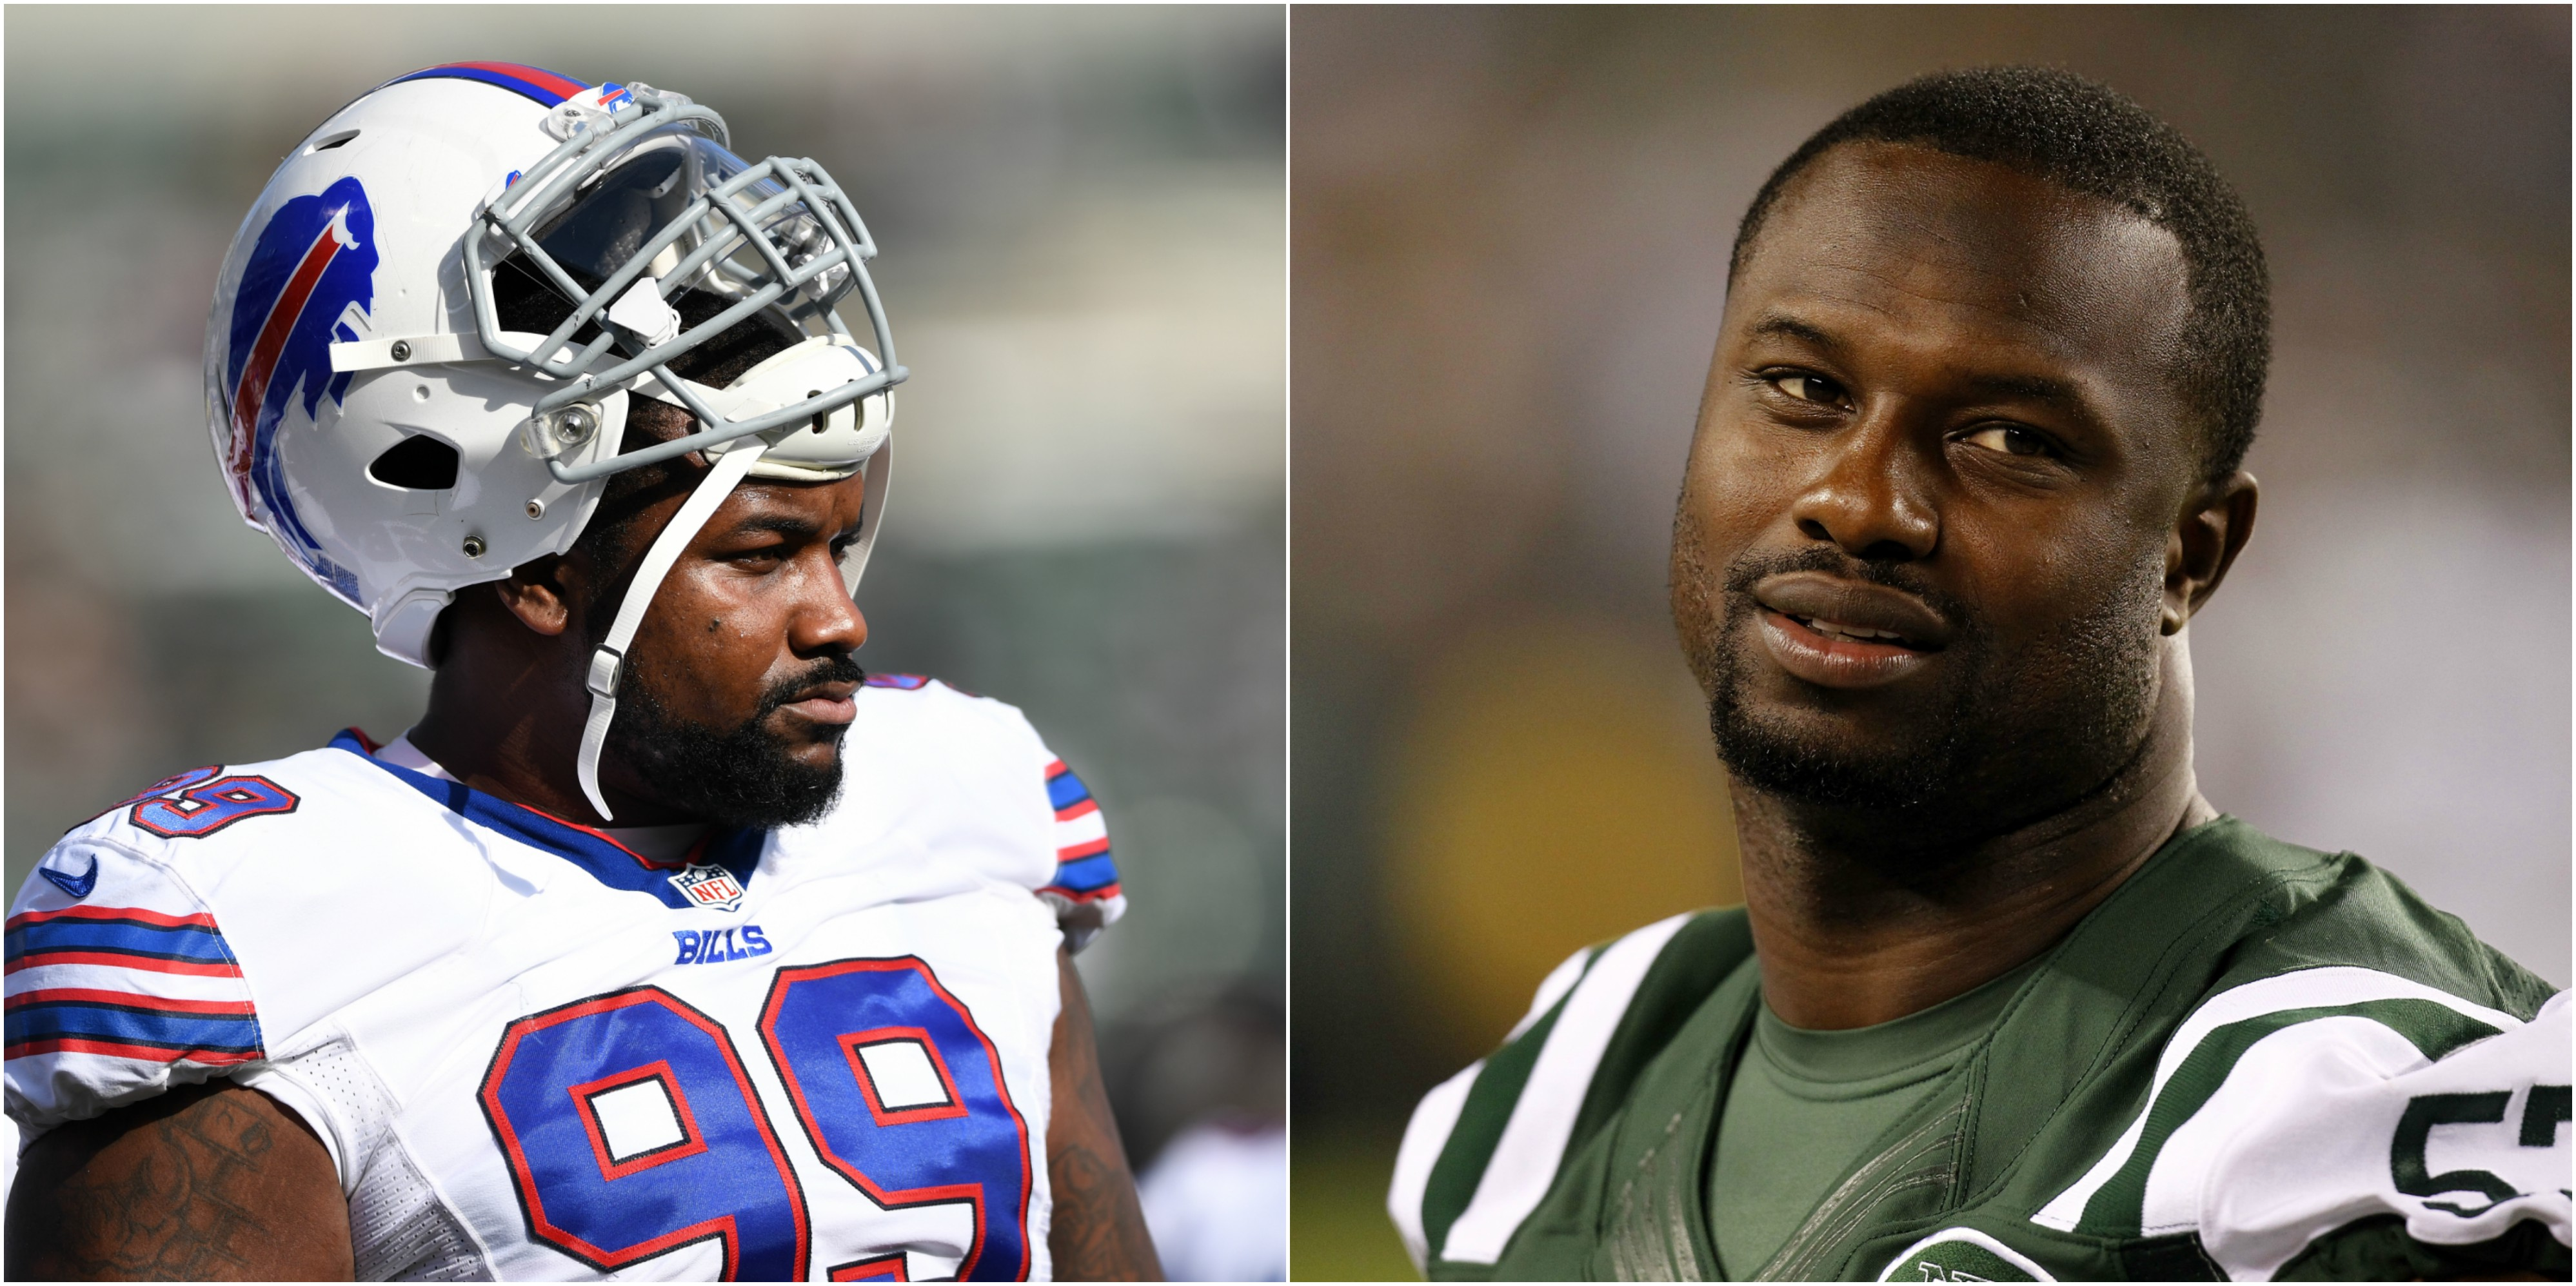 Bart Scott Says Marcell Dareus Must Be Stupid or High If He Couldn